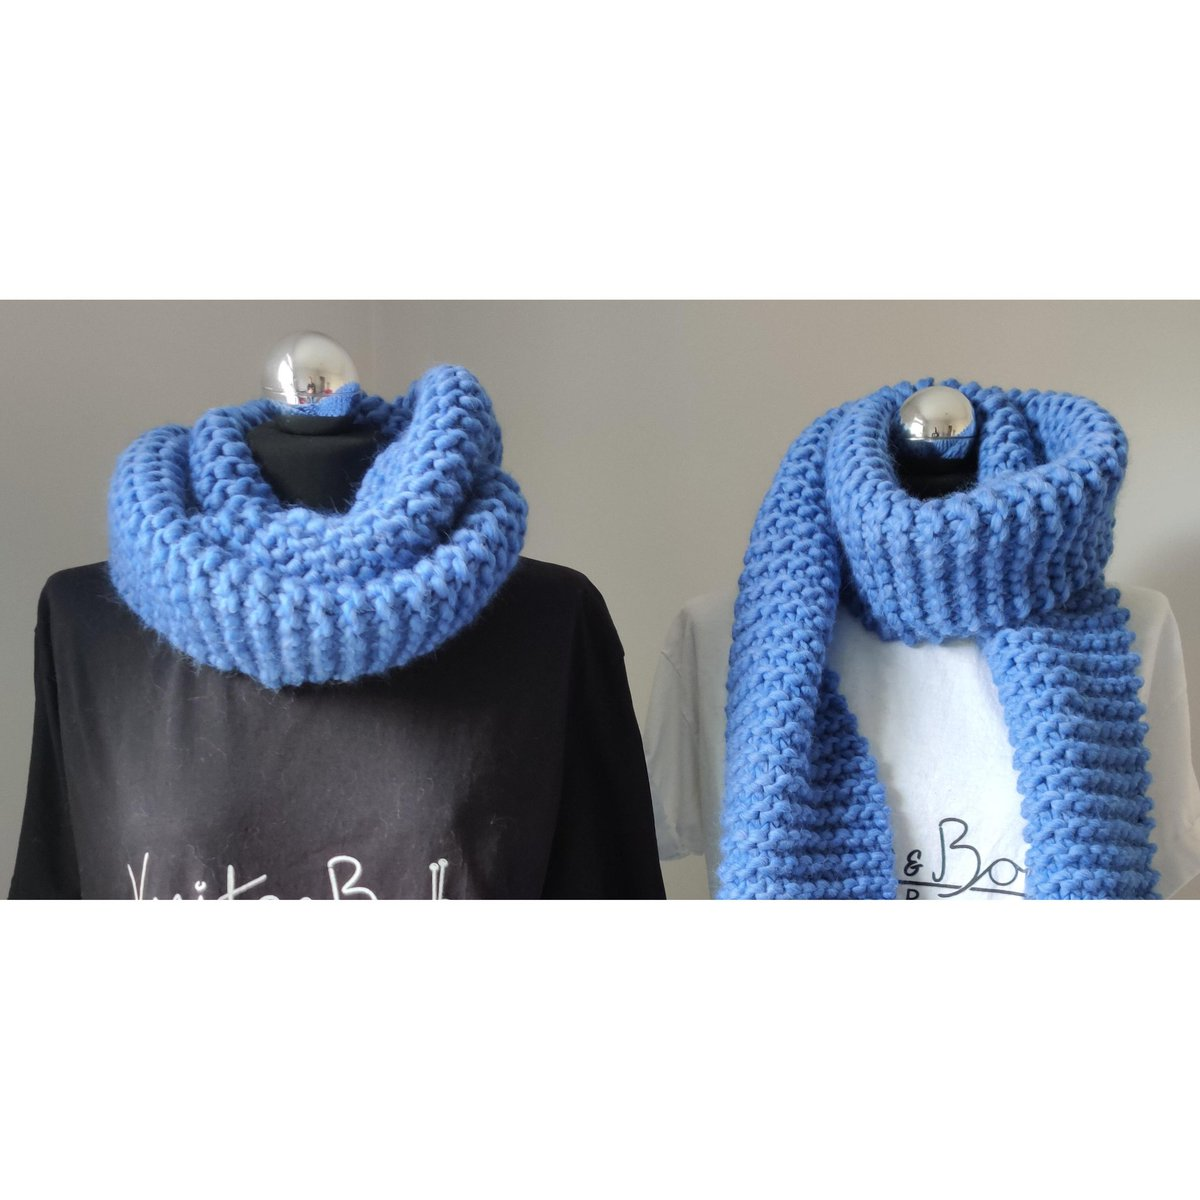 #handmadehour one colour, two scarfs, several options! Whether you're a scarf or snood person, you'll still be the most stylish in one of these chunky hand knitted wool accessories! http://www.etsy.com/uk/shop/knitsandbobsklr … #knititslow #slowfashion #sustainablefashionpic.twitter.com/ywzvM0ojhk